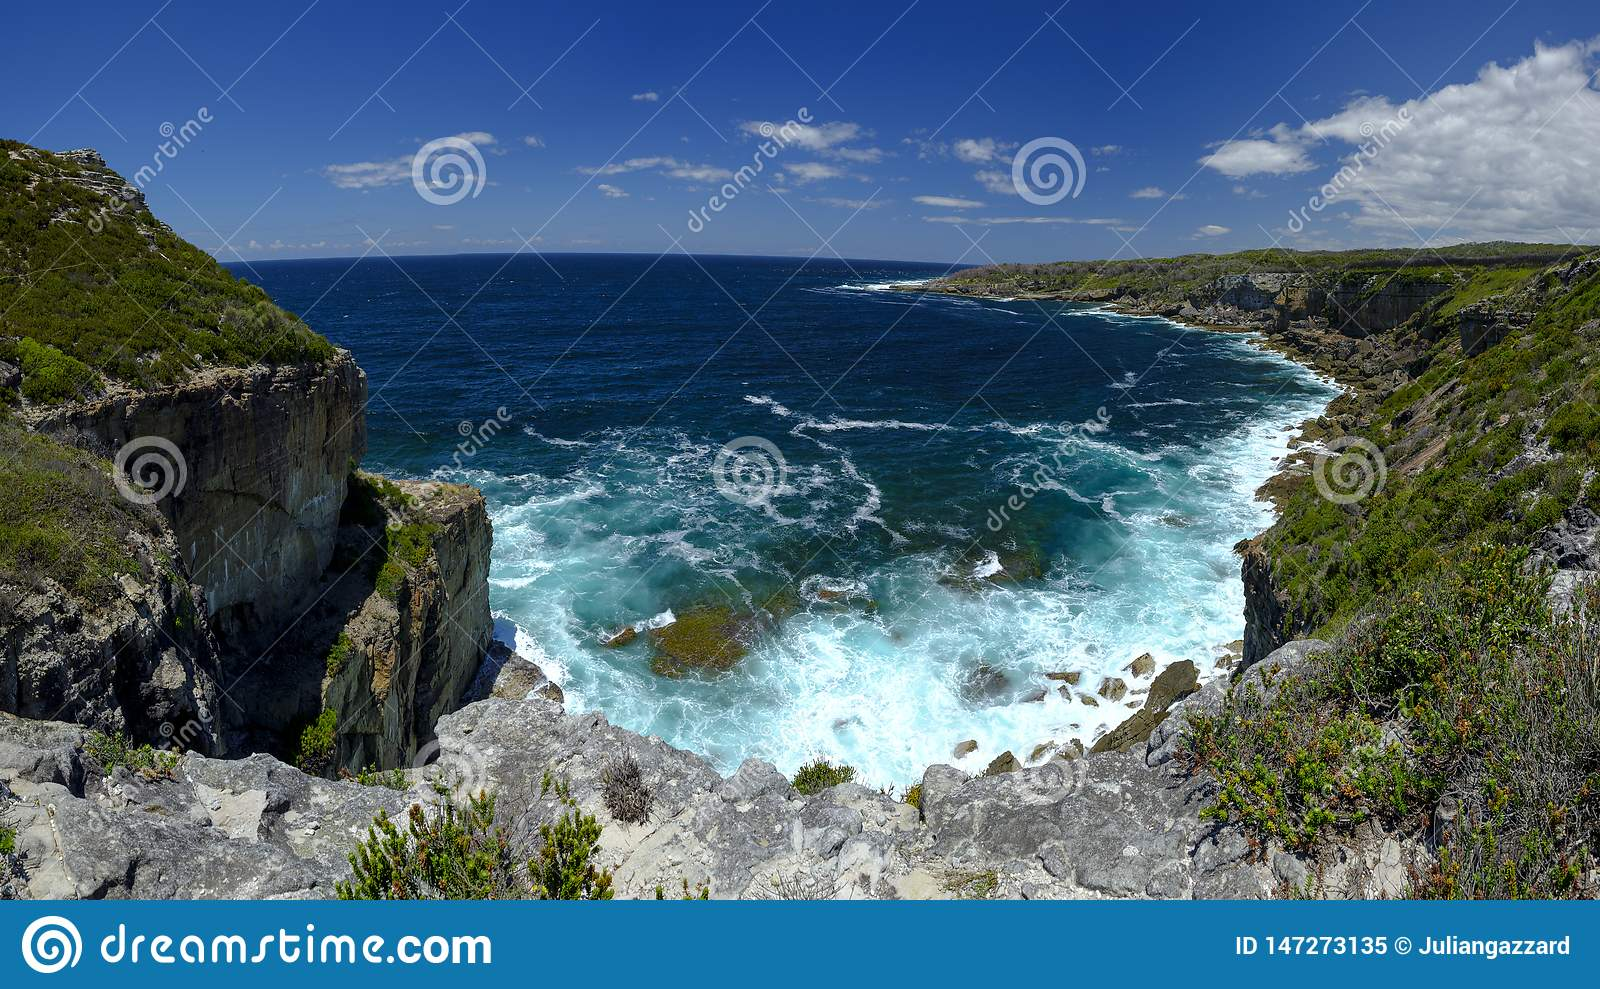 The view to seaward from Cape St George Light House in the Jervis Bay National Park, NSW, Australia